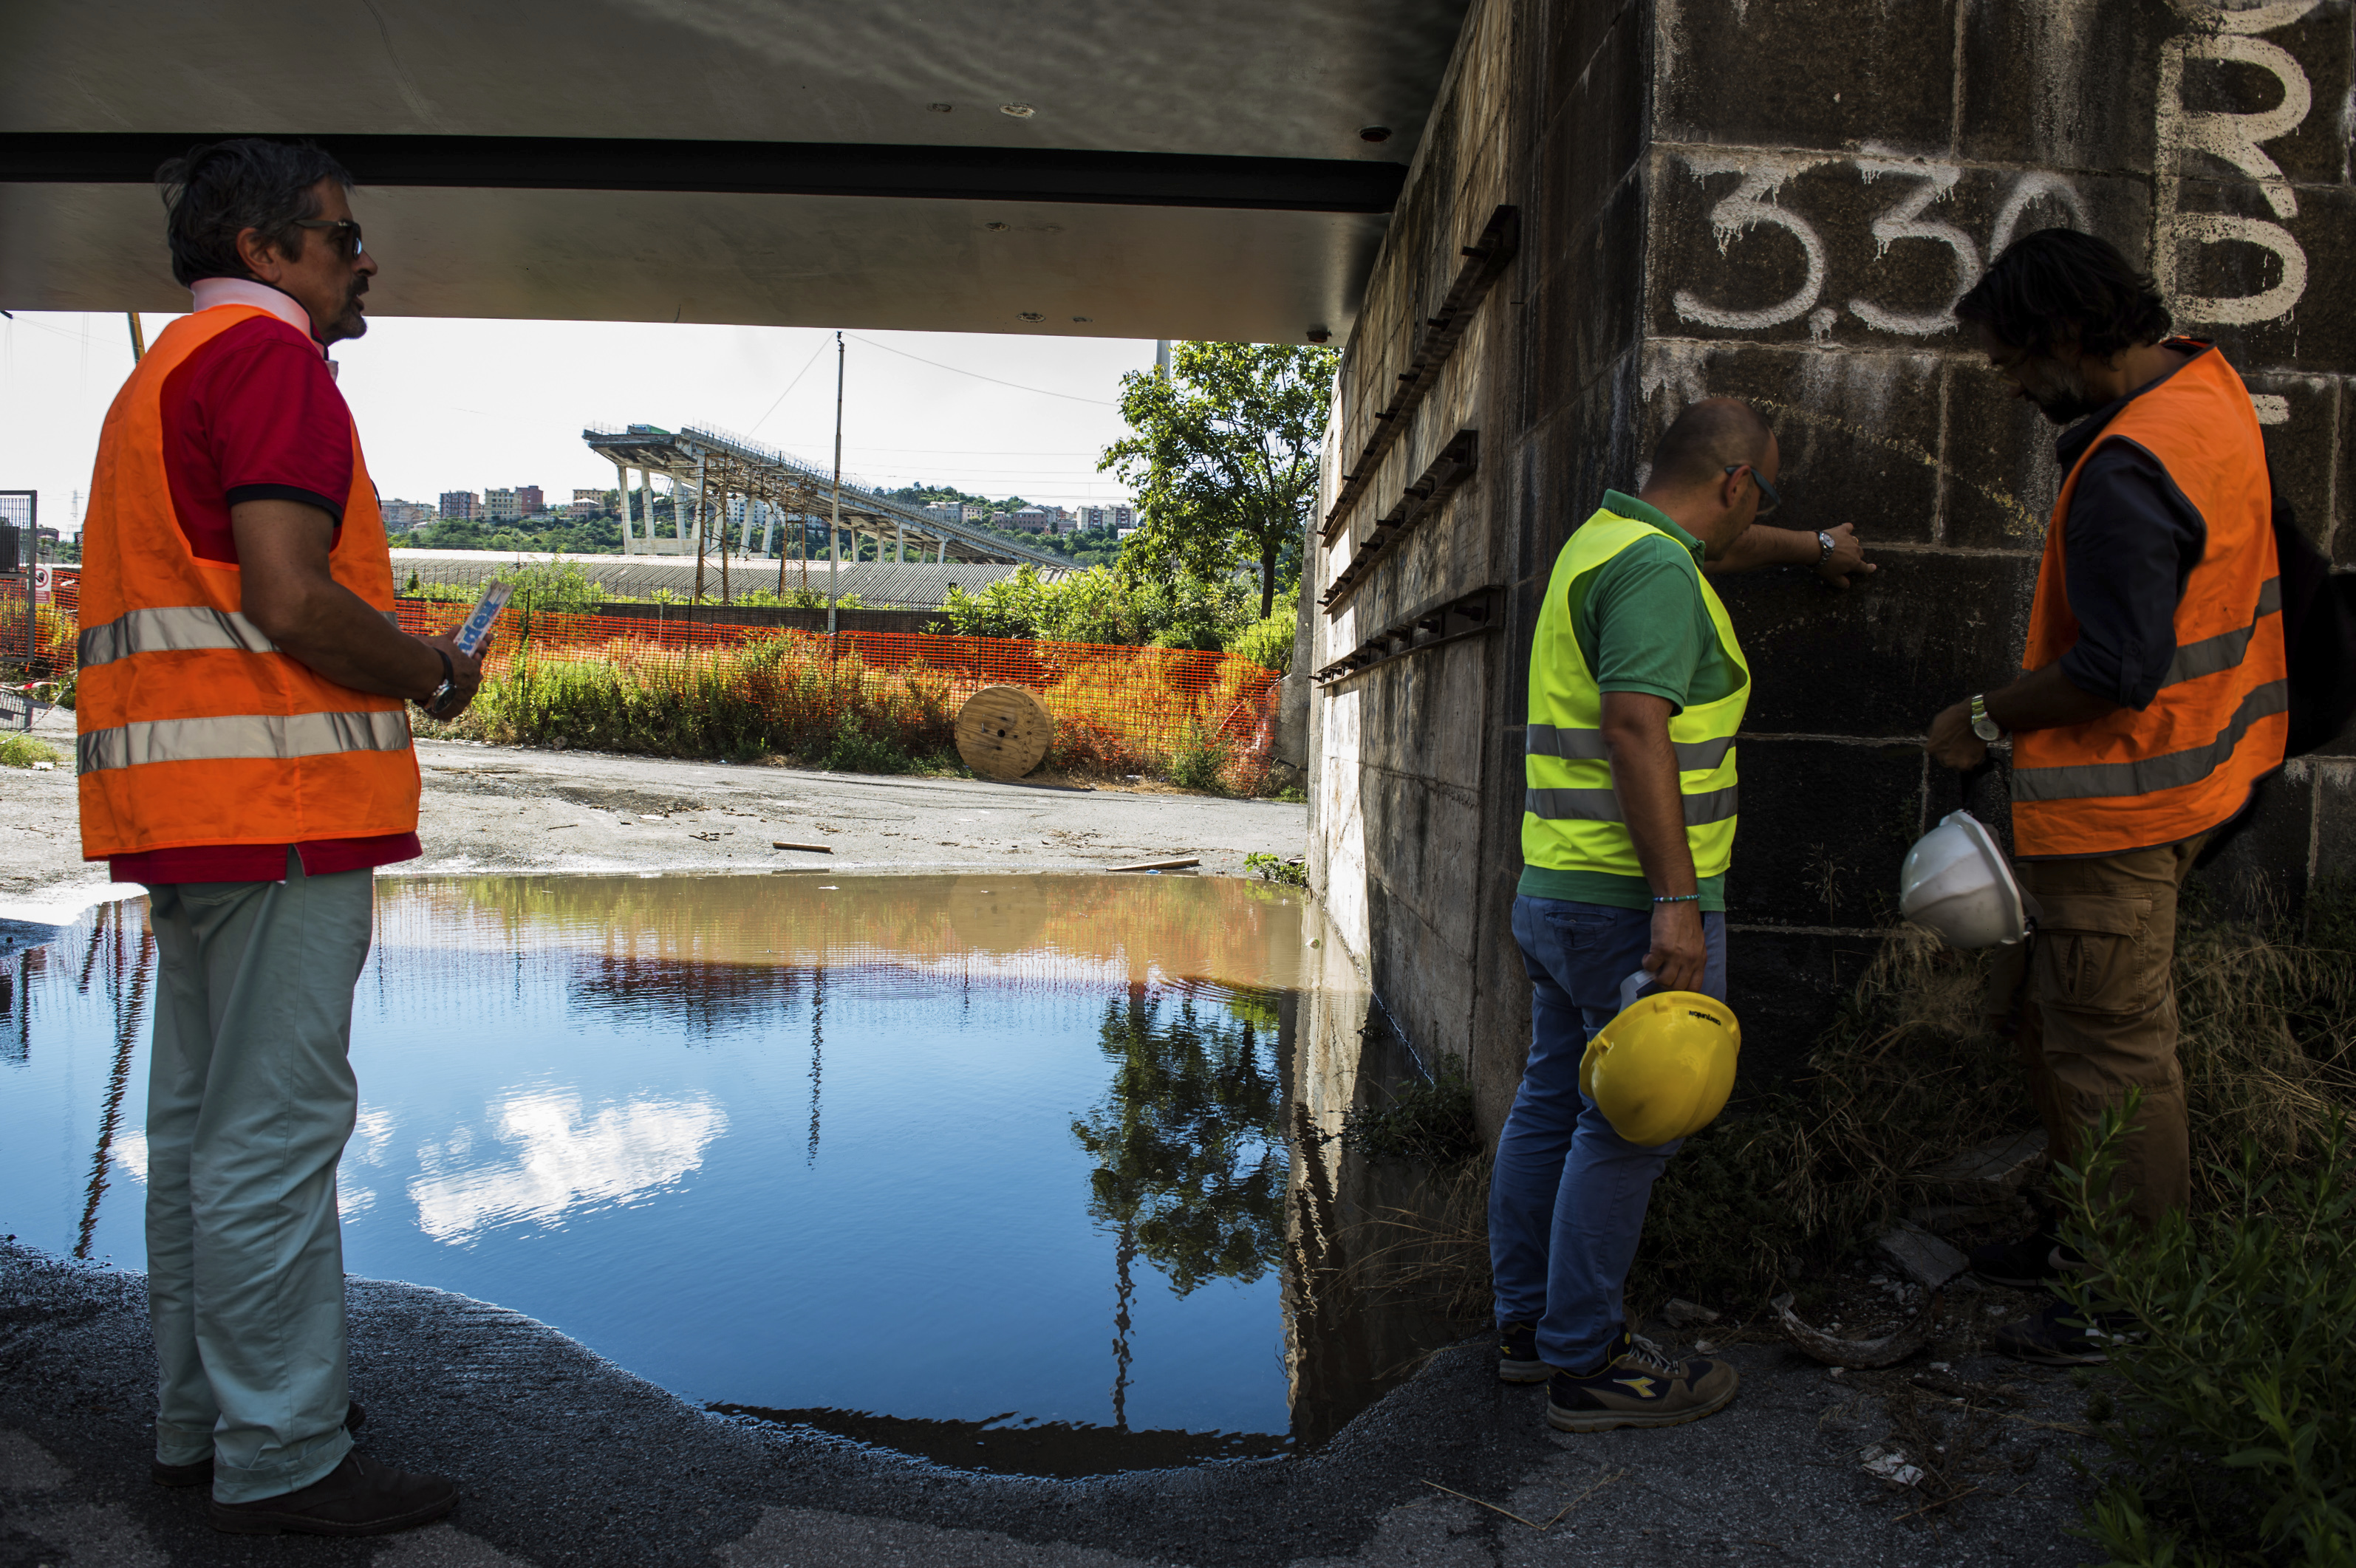 Workers inspect the the area around the collapsed Morandi highway bridge, in Genoa, northern Italy, Wednesday, Aug. 15, 2018. A bridge on a main highway linking Italy with France collapsed in the Italian port city of Genoa during a sudden, violent storm, sending vehicles plunging 90 meters (nearly 300 feet) into a heap of rubble below. (AP Photo/Nicola Marfisi)